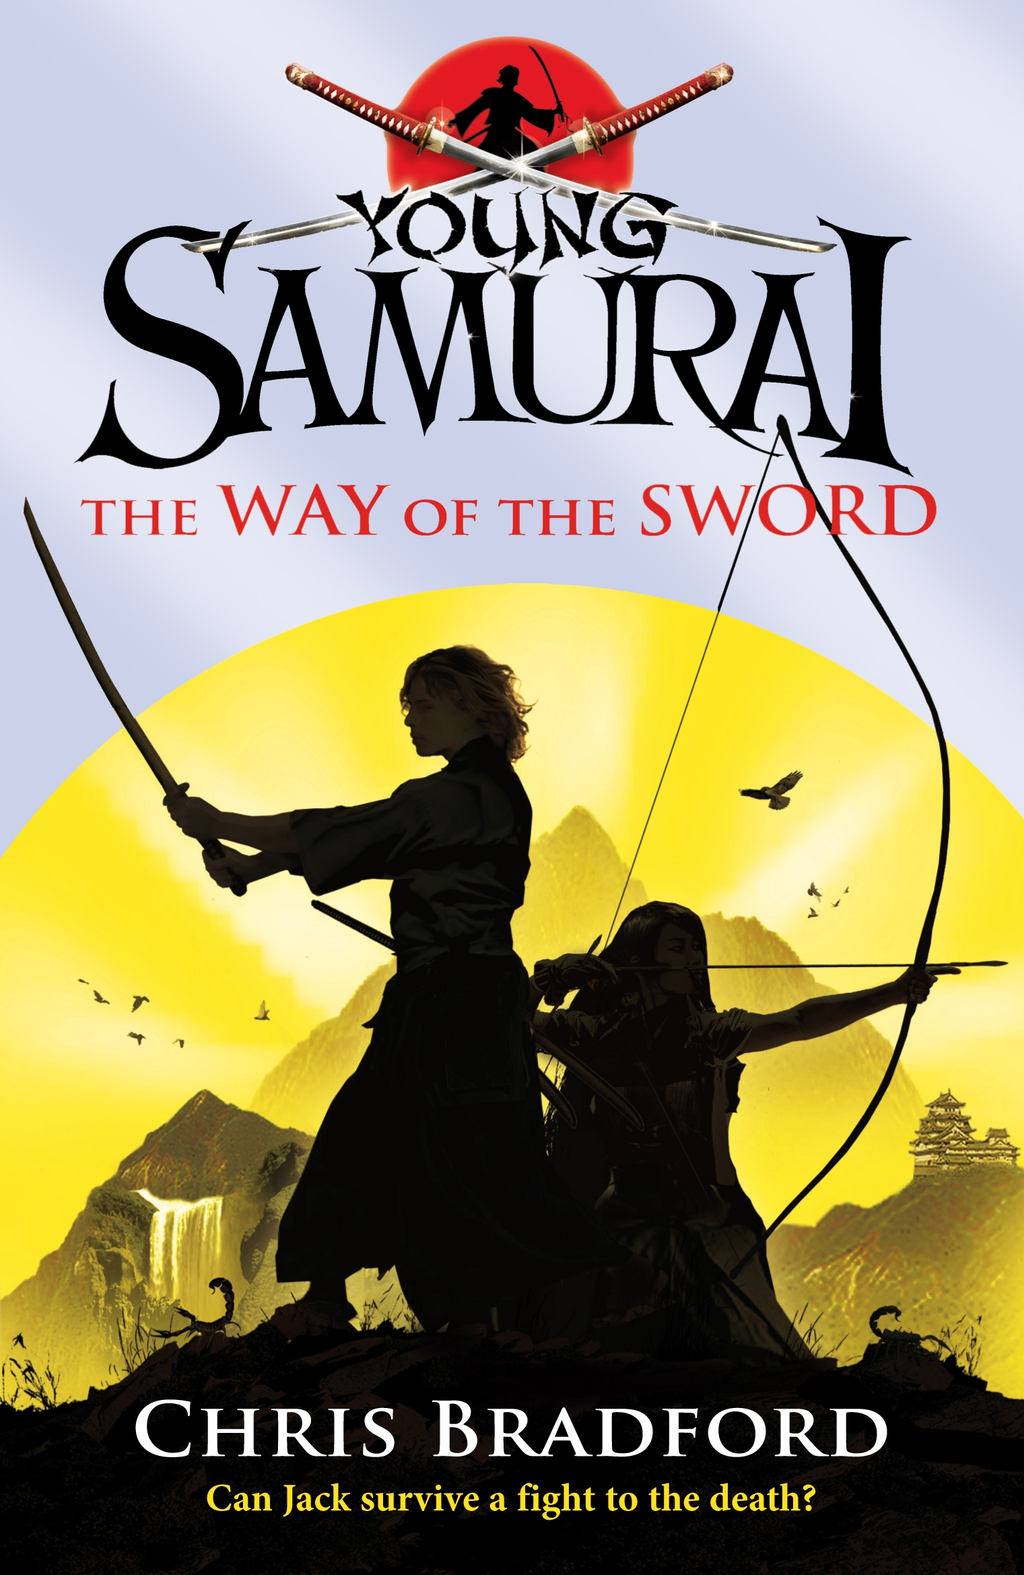 Young Samurai: The Way of the Sword The Way of the Sword